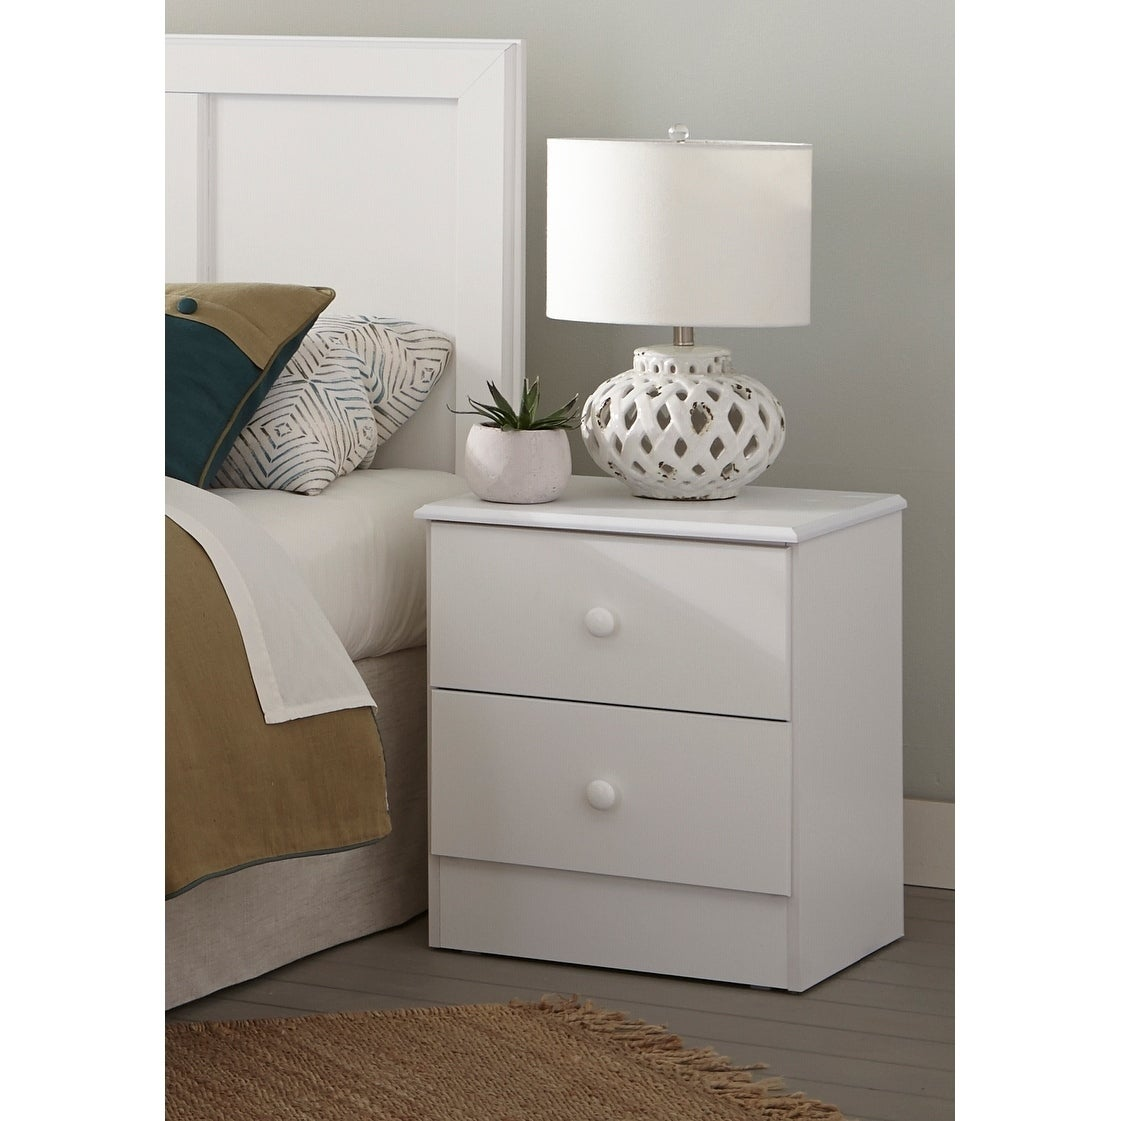 Three Piece White Bedroom Set With Basic White Pulls Including Twin Headboard Five Drawer Chest And Night Stand